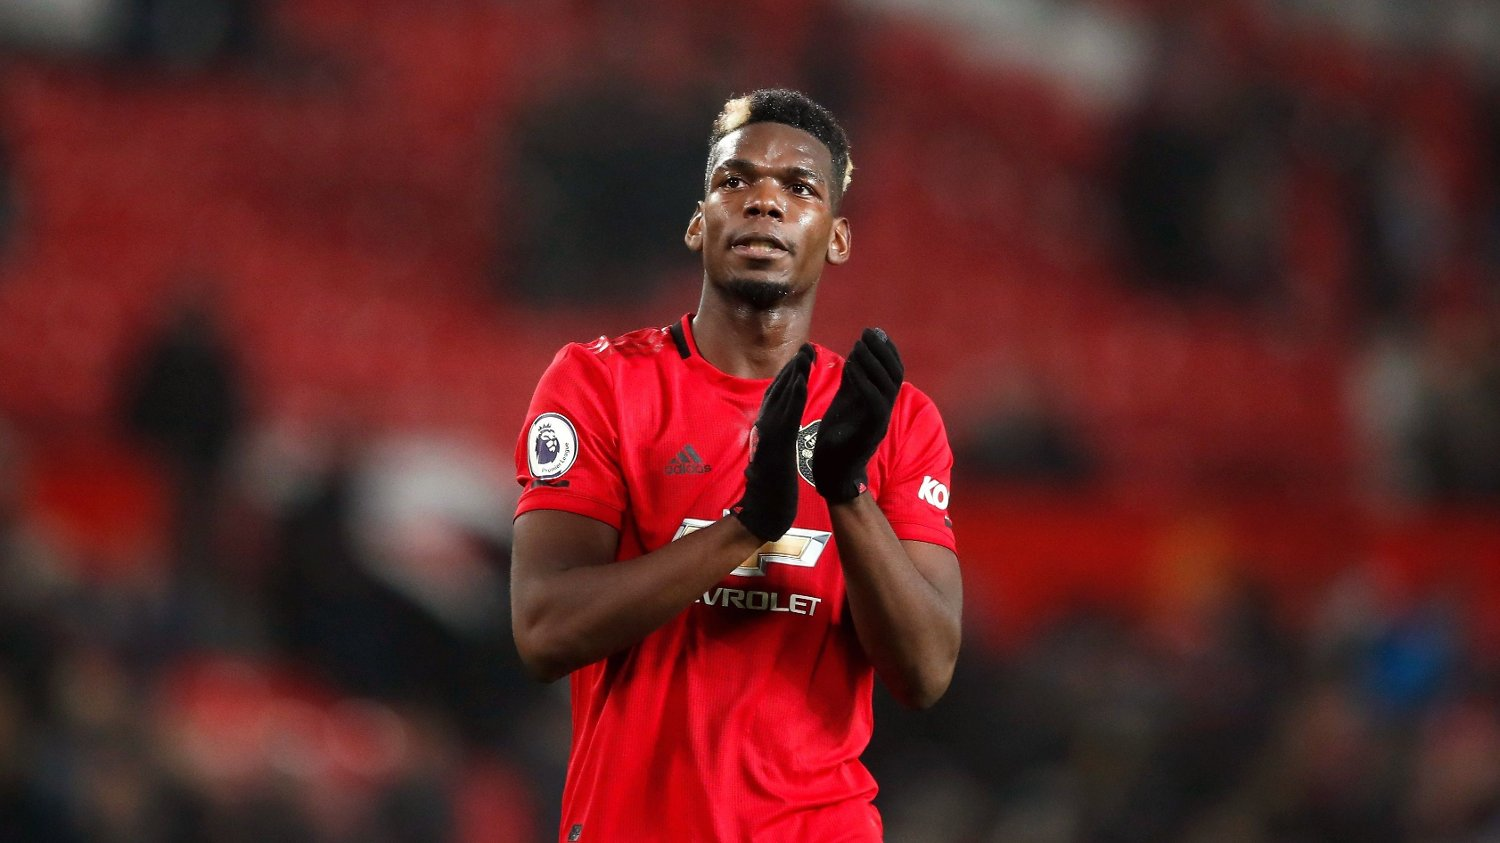 File photo dated 26-12-2019 of Manchester United's Paul Pogba applauds the fans after the Premier League match at Old Trafford, Manchester.